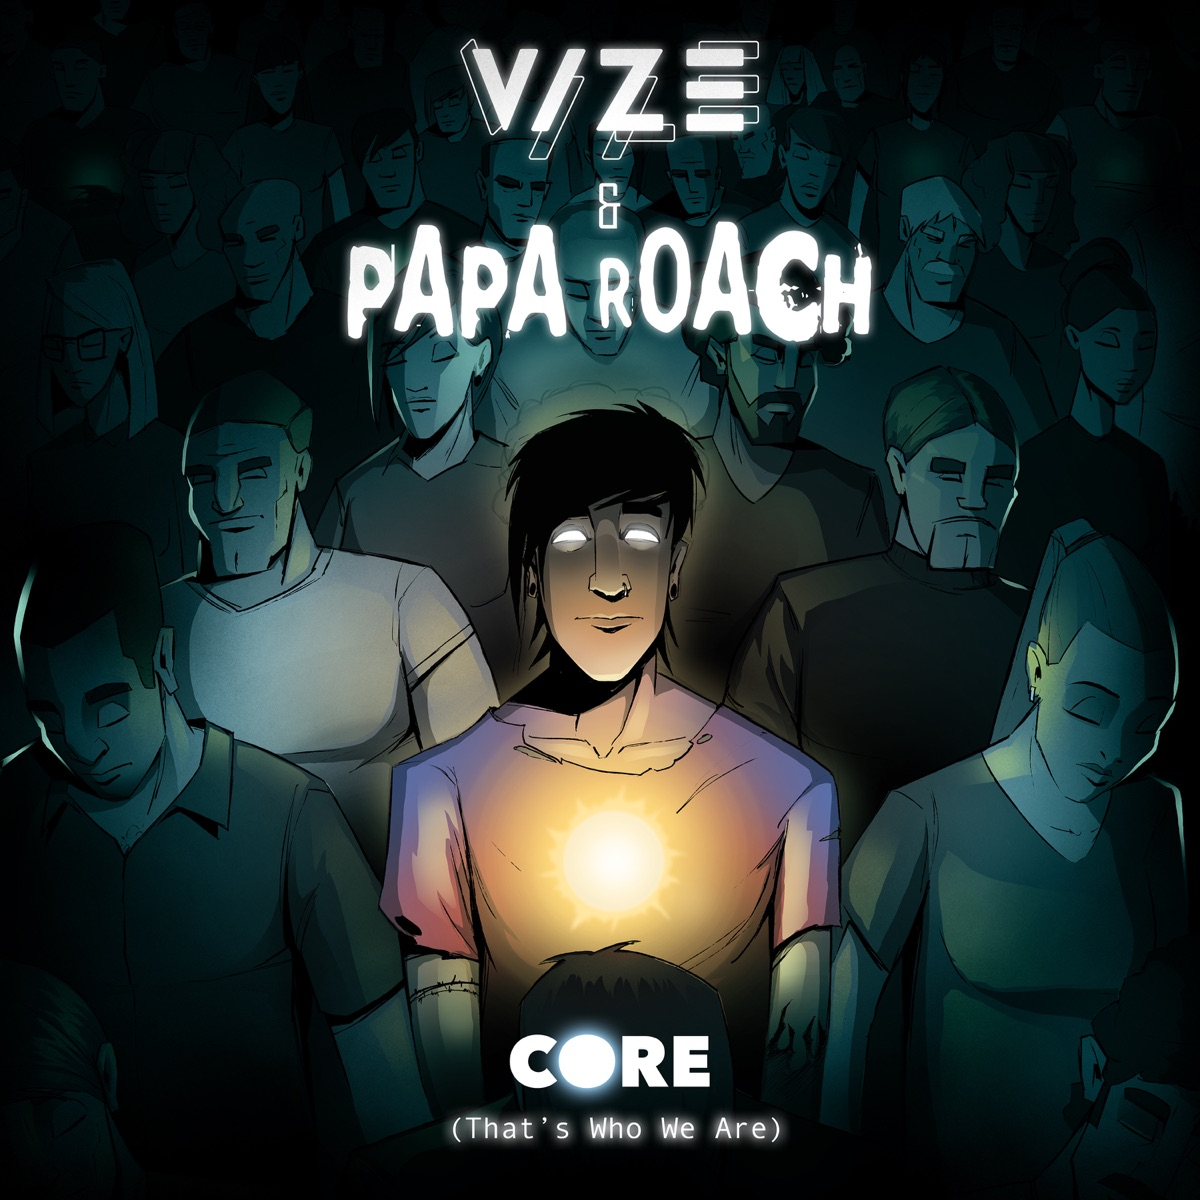 Core (That's who we are)